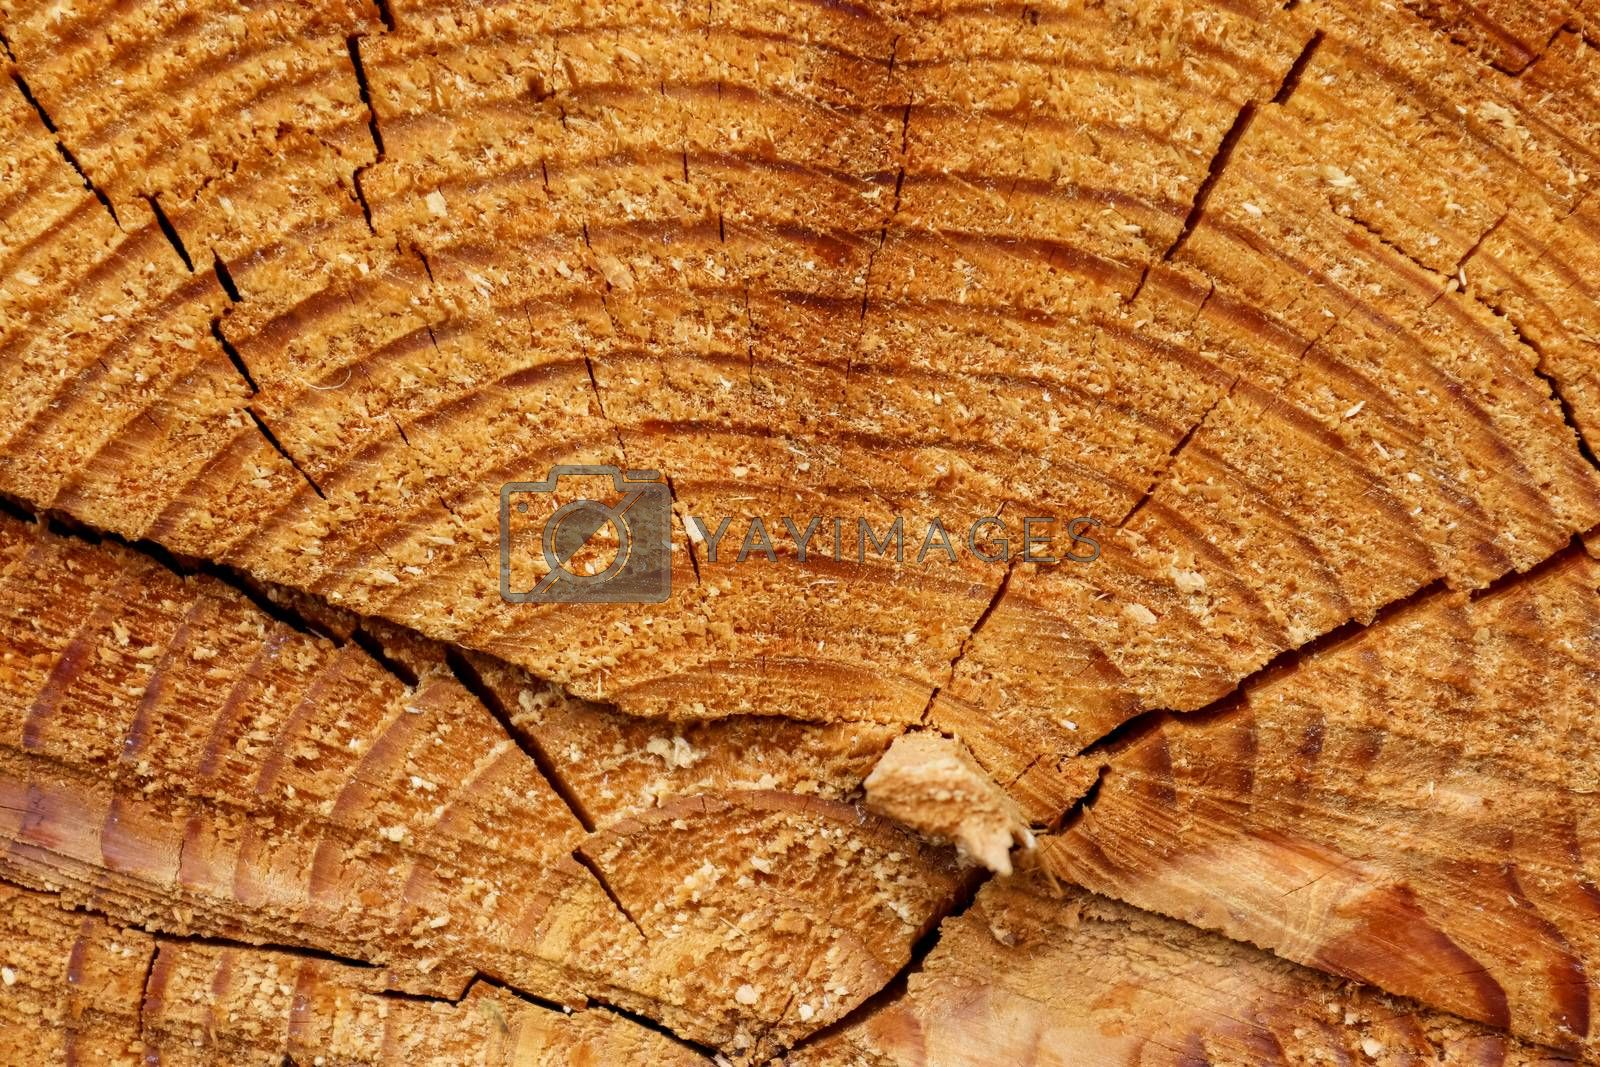 Fresh sawed wood in a close up view. Detailed texture of annual  by MP_foto71